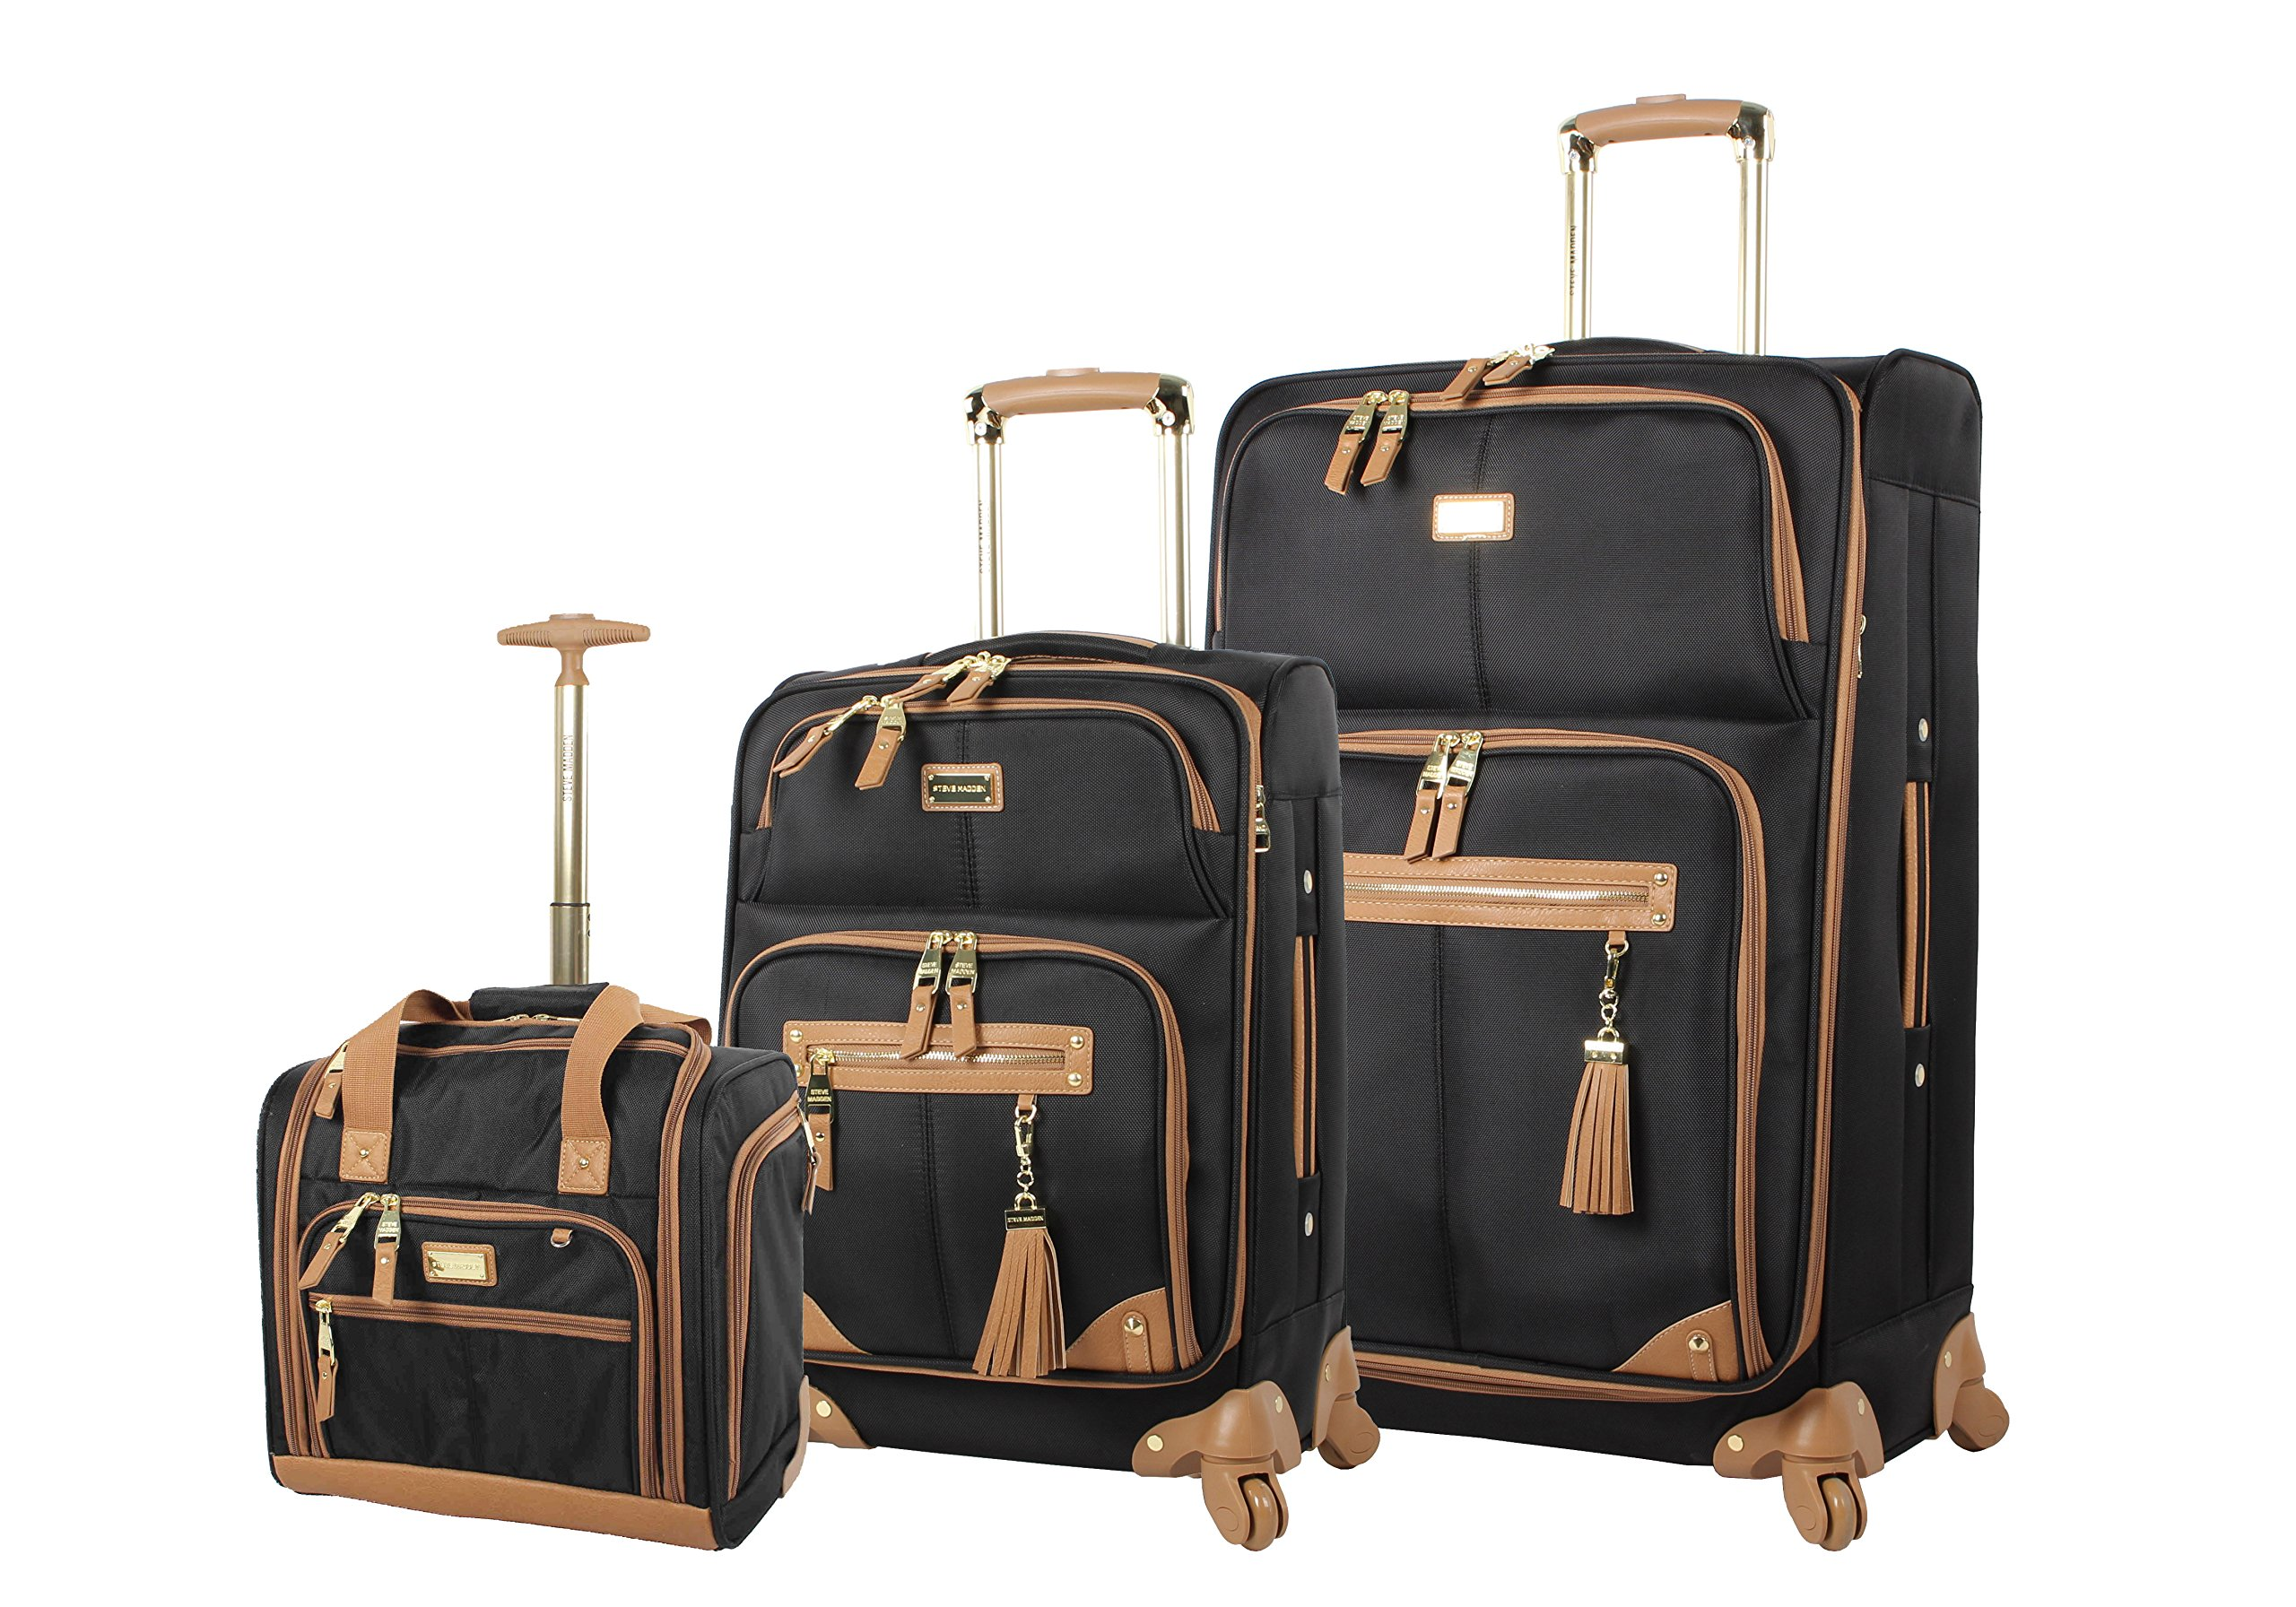 Steve Madden Luggage 3 Piece Softside Spinner Suitcase Set Collection (Harlo Black) by Steve Madden Luggage